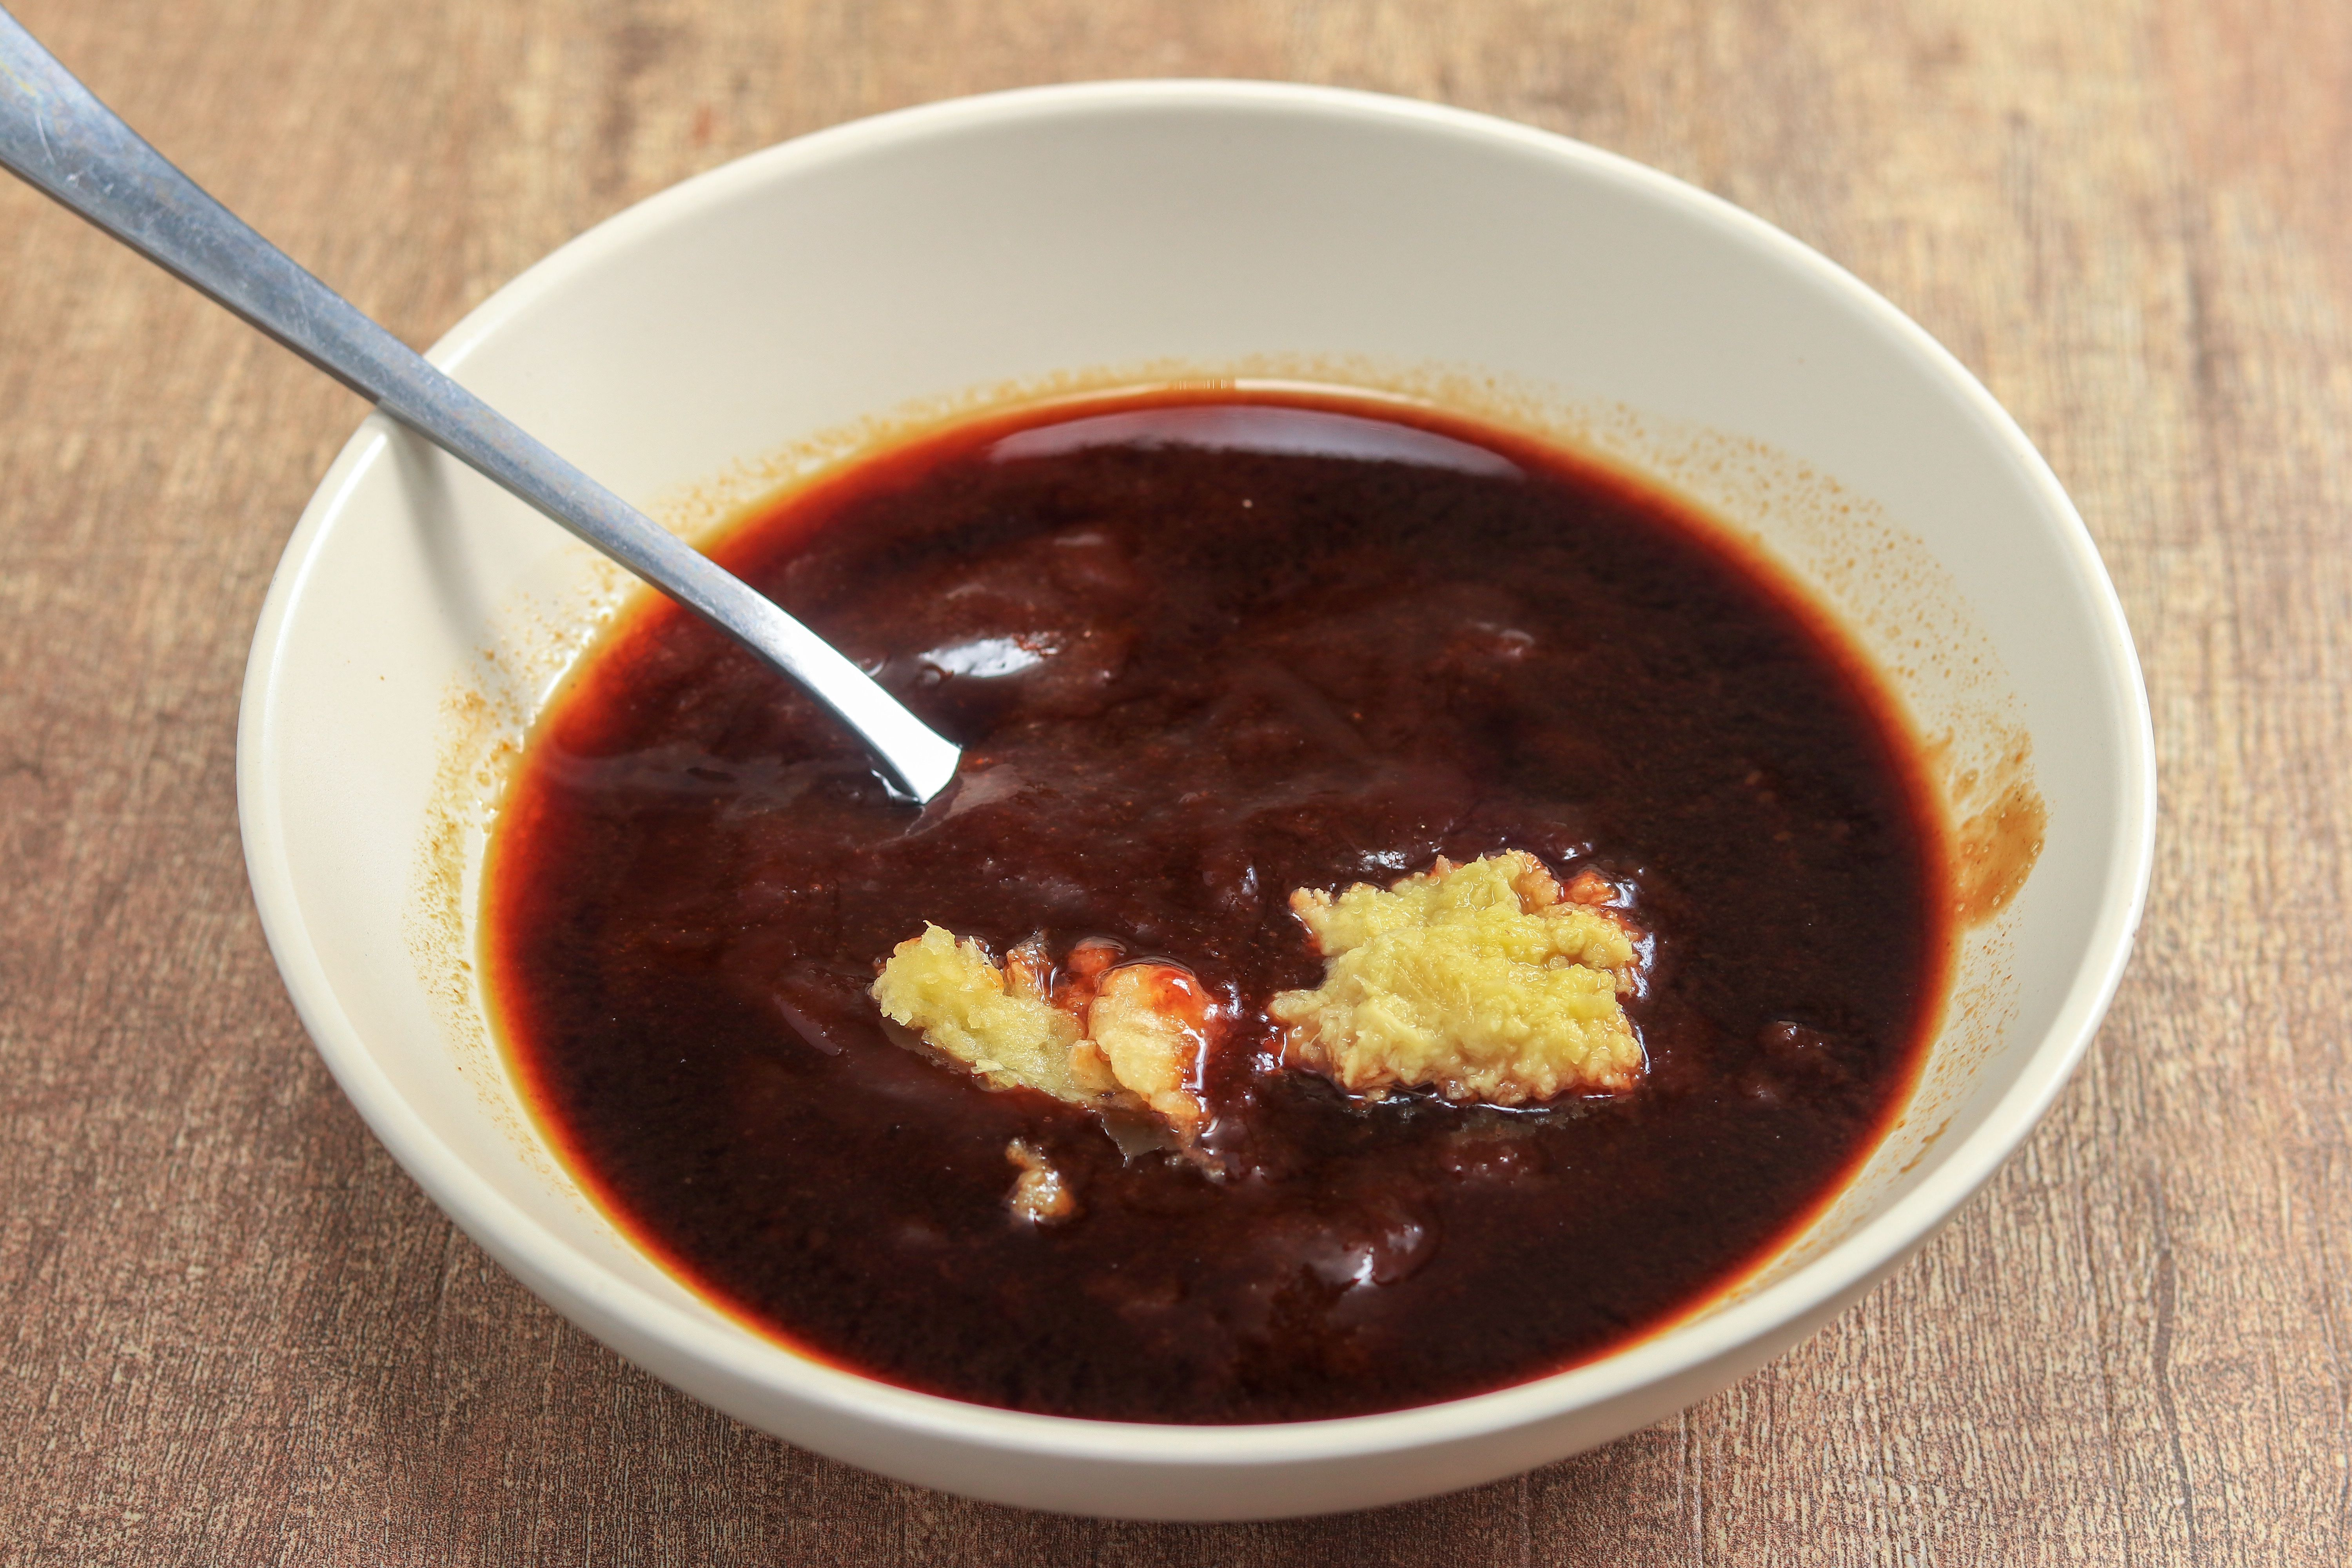 Barbecue sauce with garlic